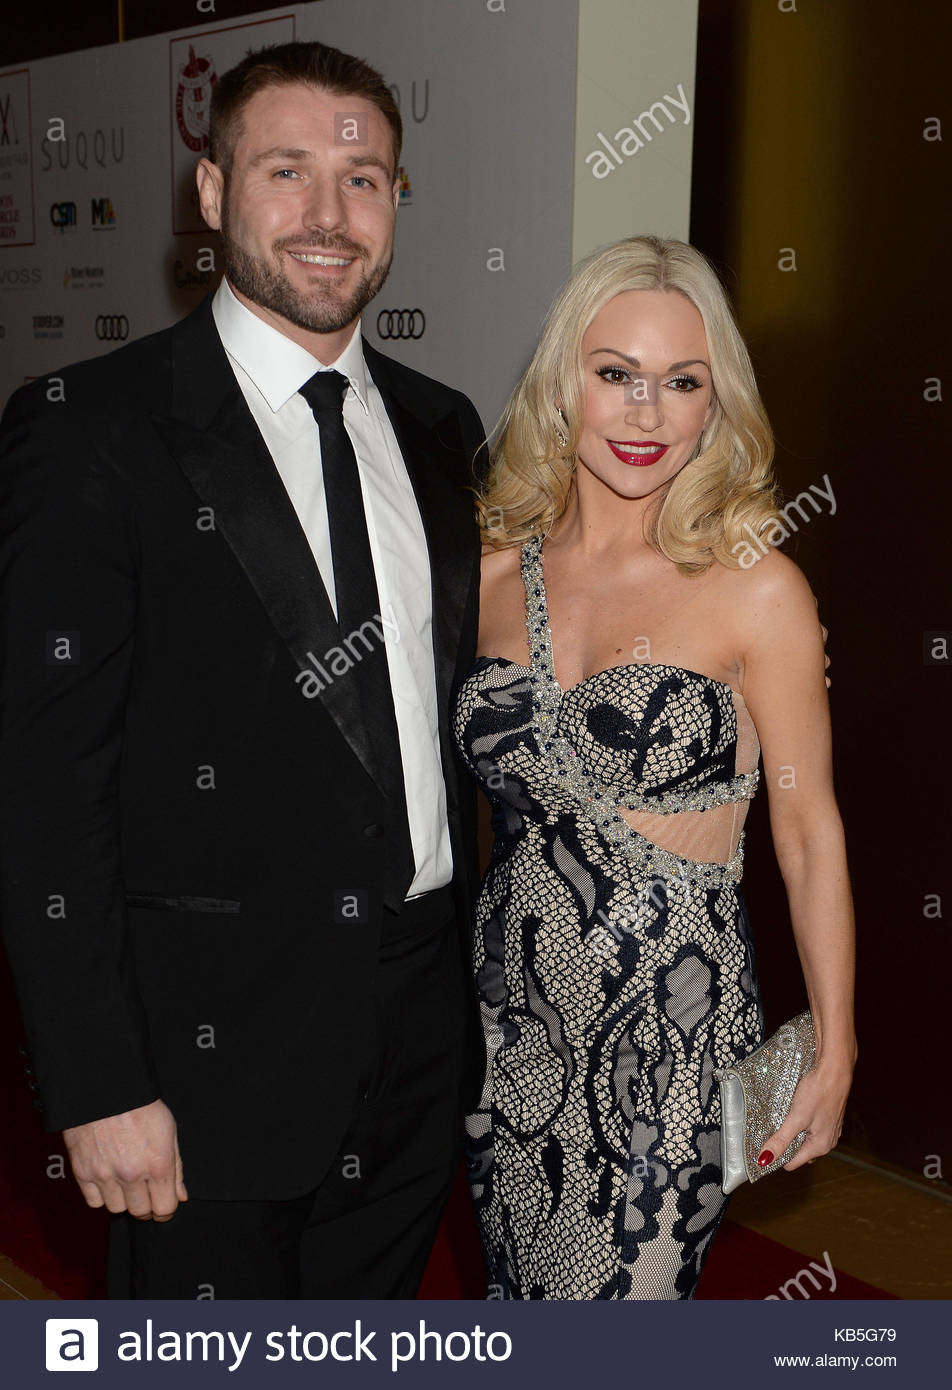 File photo dated 22/1/2017 of Kristina Rihanoff and Ben Cohen as the ex-Strictly Come Dancing couple are not planning - Stock Image